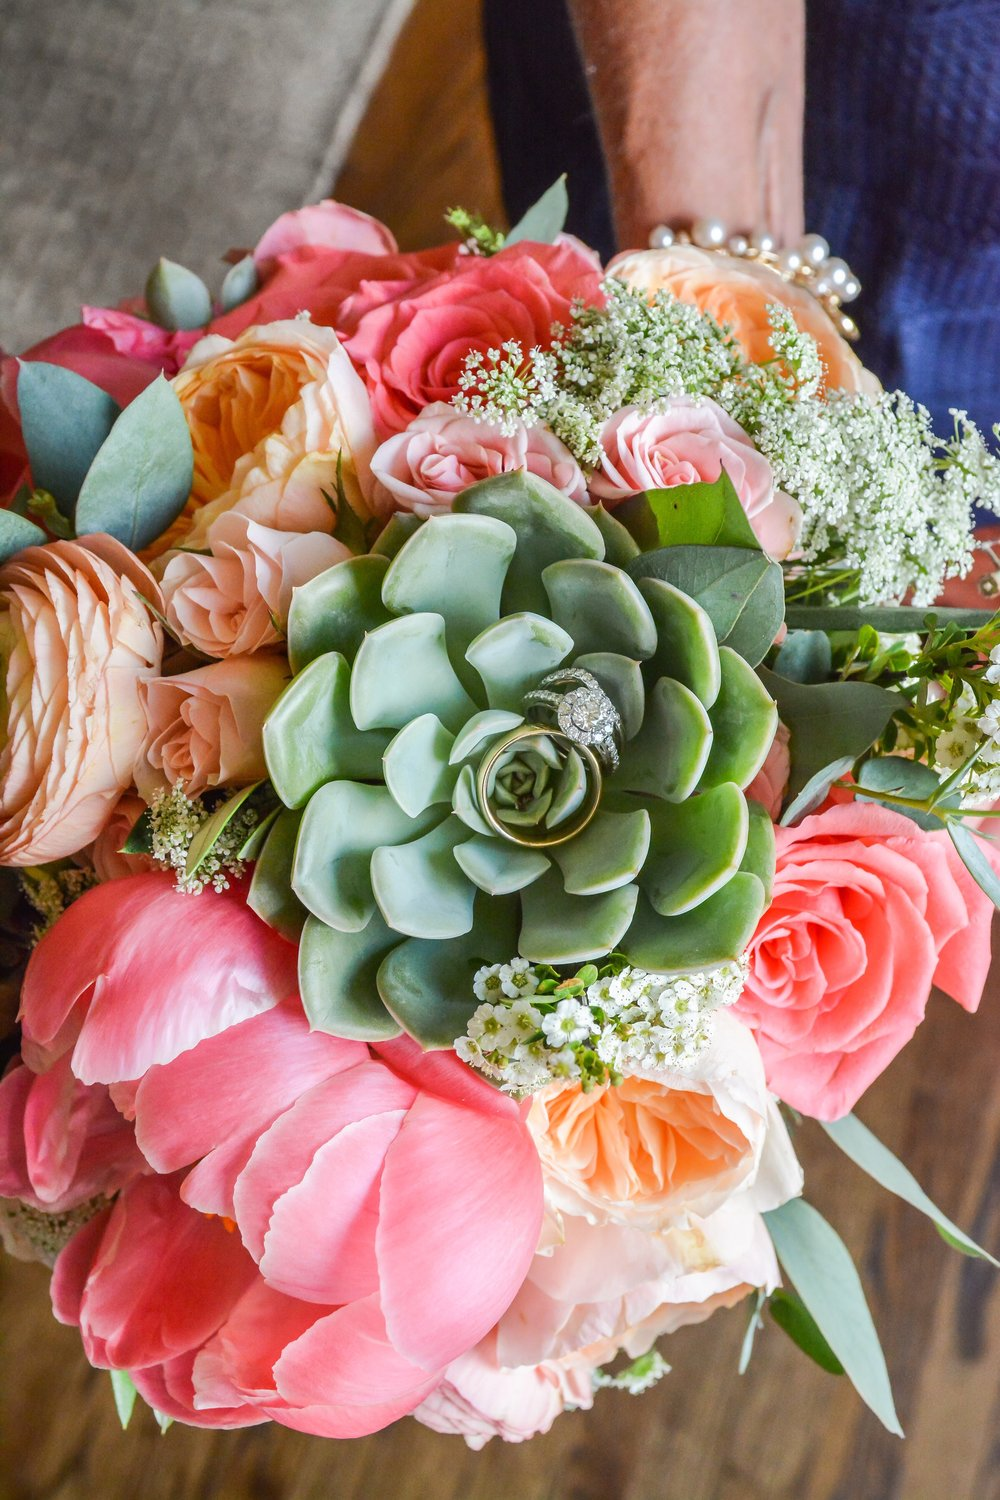 Coral Charm Peonies, Amsterdam Roses, Juliet Garden Roses, Ranunculus, Queen Anne's Lace and Succulents.  Photo by Taylor Fricks Photography.  Fairyland Club, Lookout Mountain GA